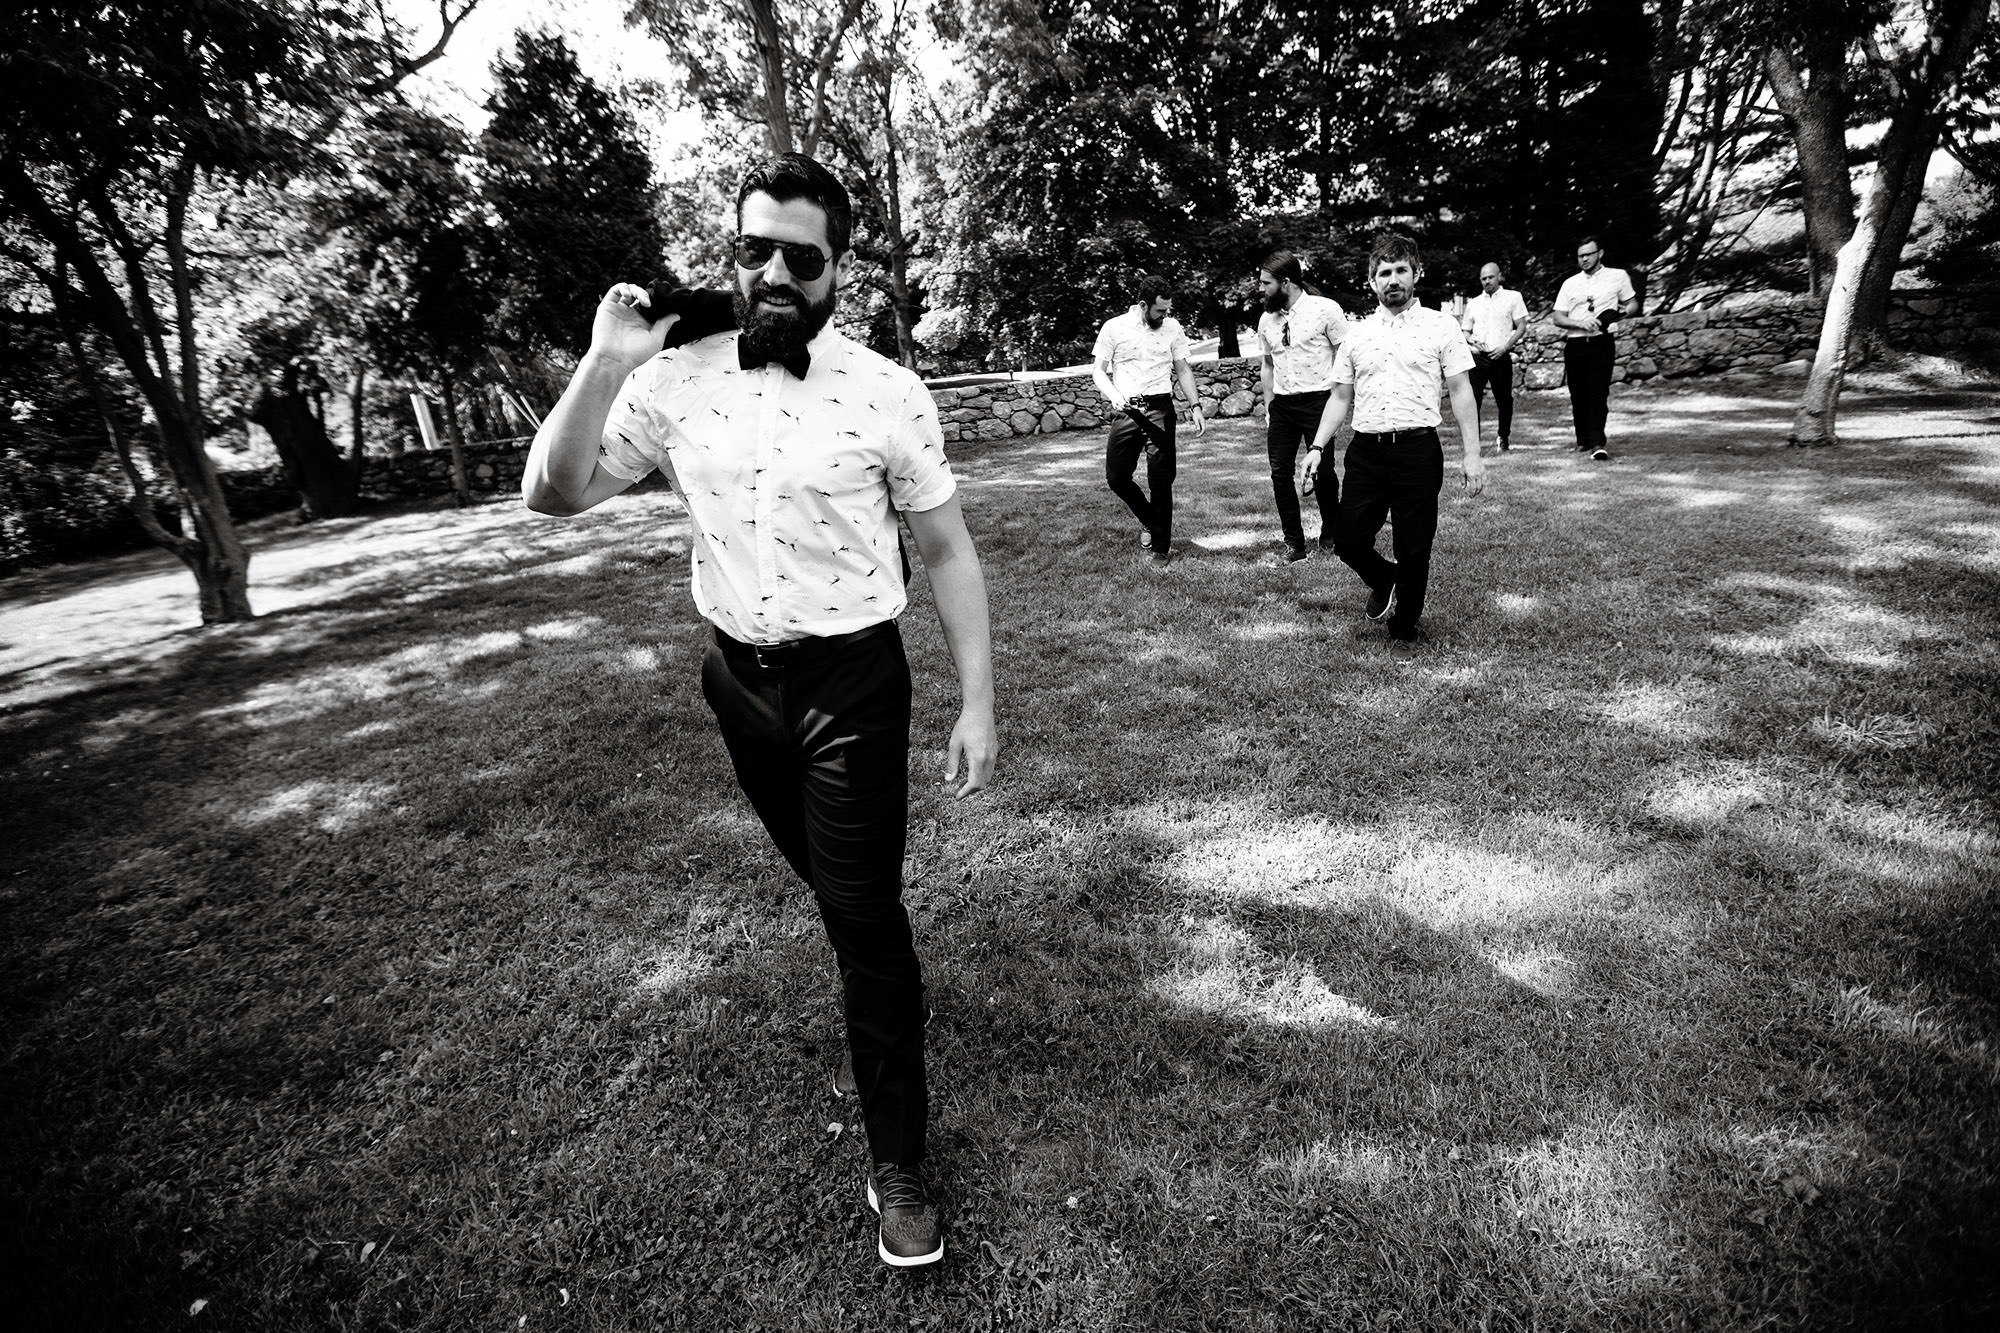 Before the Mount Hope Farm Wedding, the groomsmen stroll around the grounds.